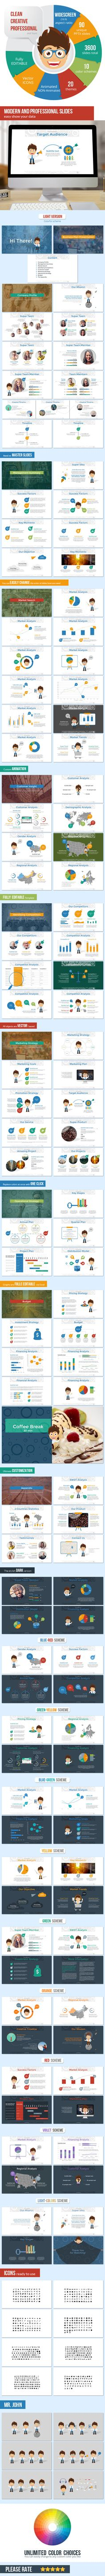 Business Plan with Mr. John Presentation Template (PowerPoint Templates)